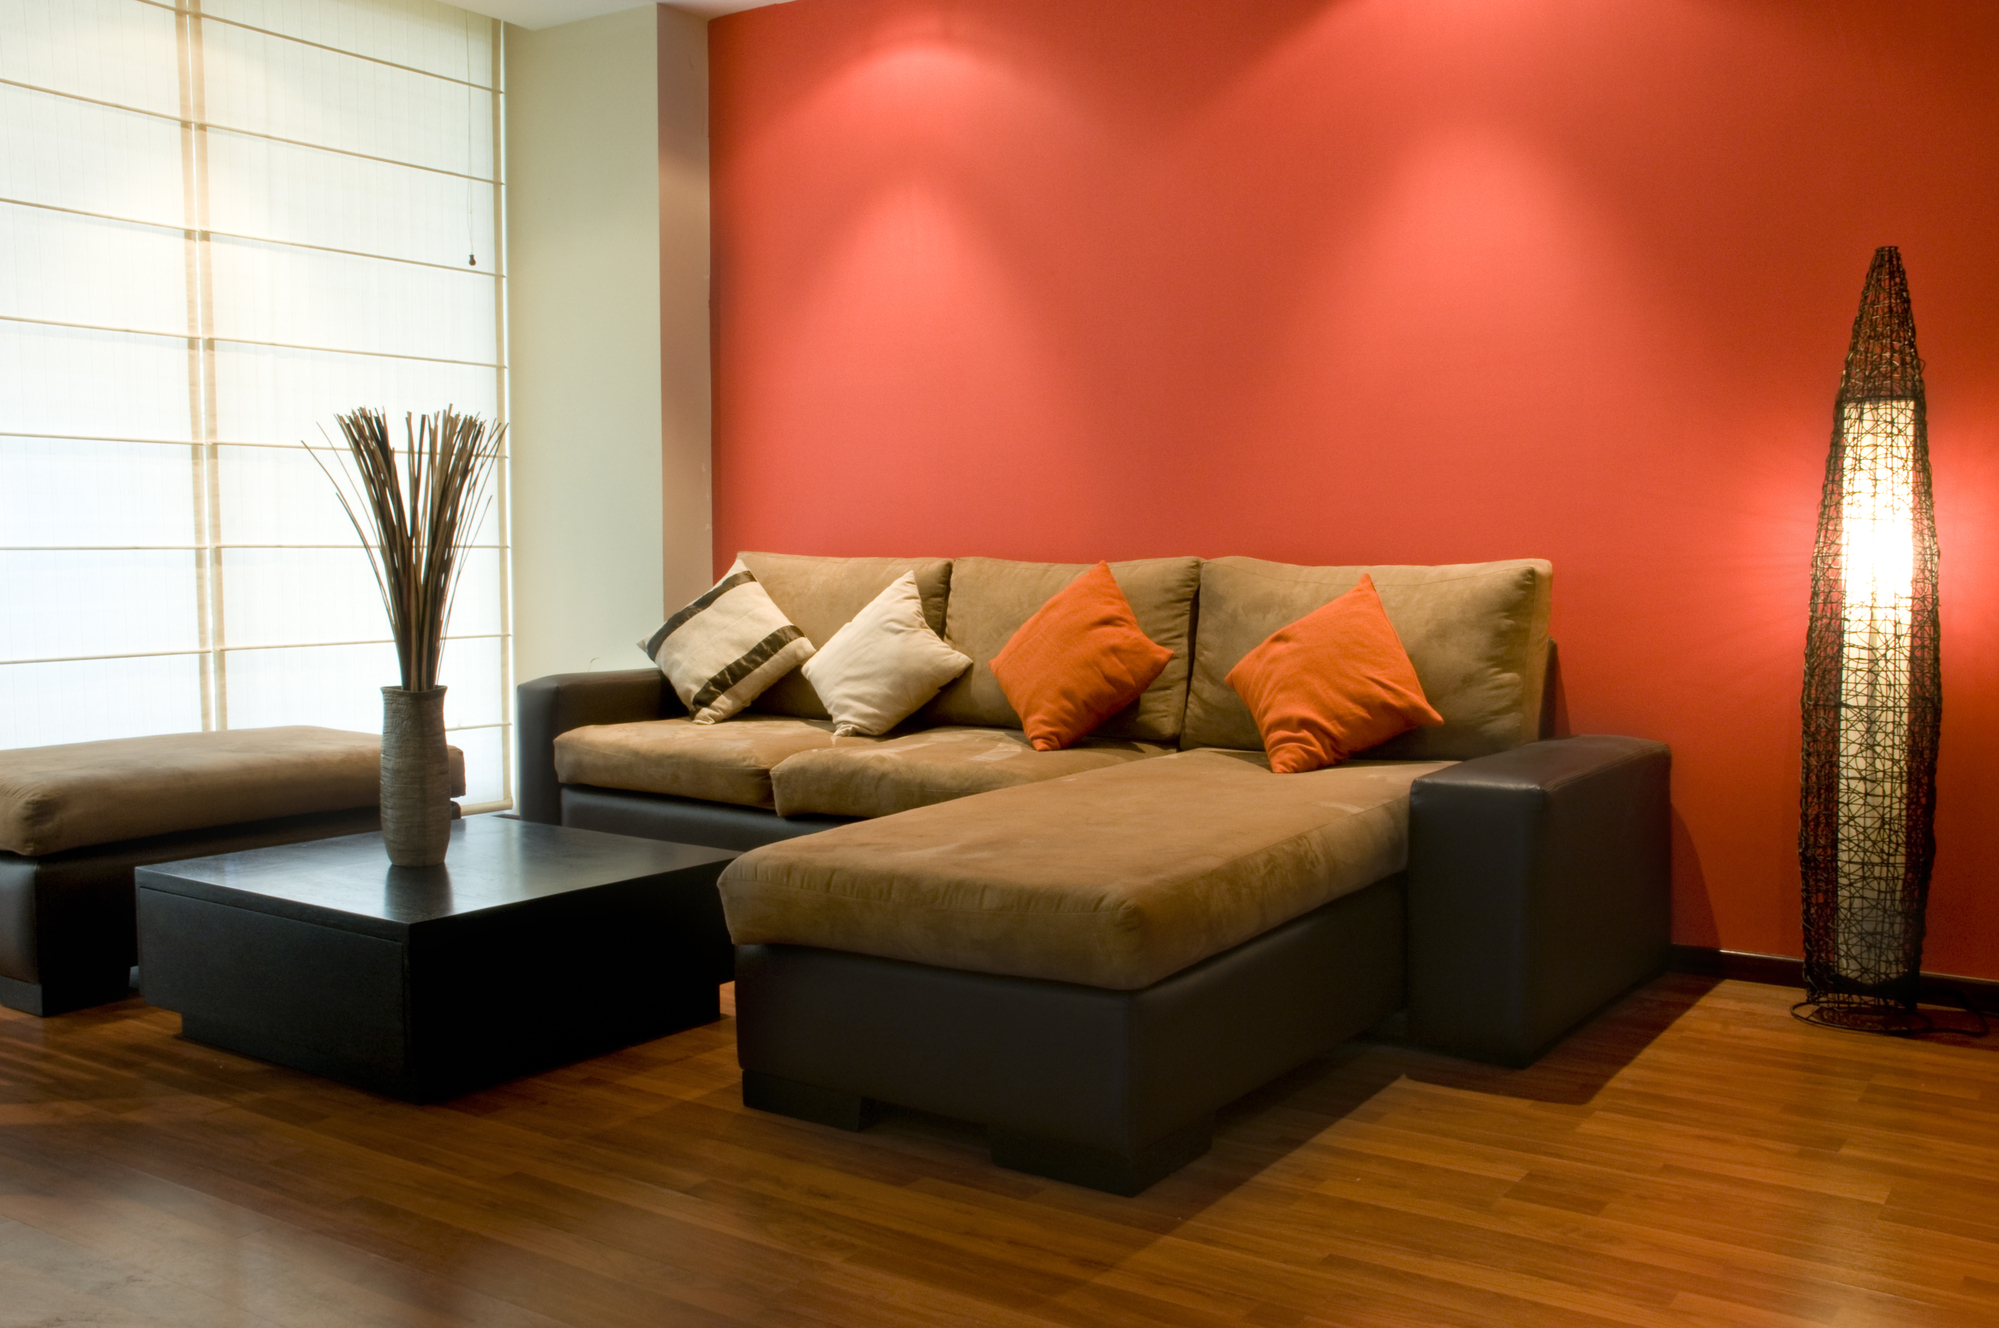 3 Interior Painting Tips for Choosing an Elegant Color Scheme ...